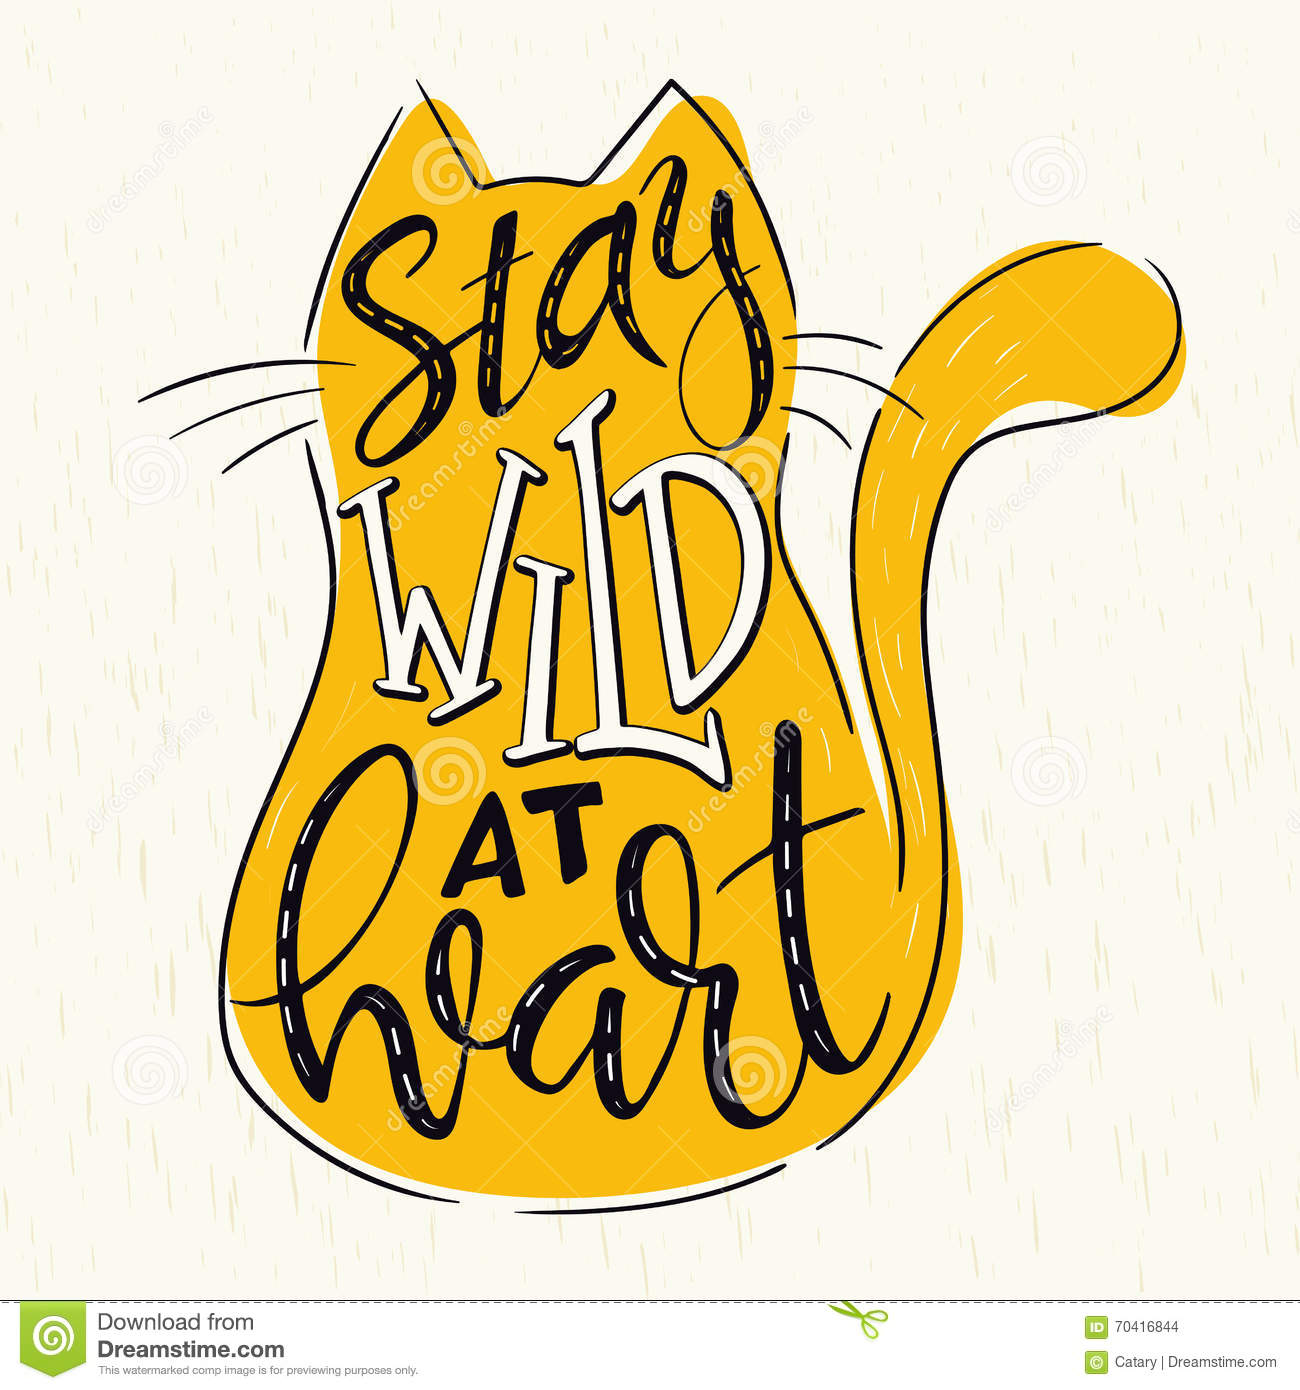 Vector hand lettering quote - stay wild at heart - in cat silhouette on grunge background.